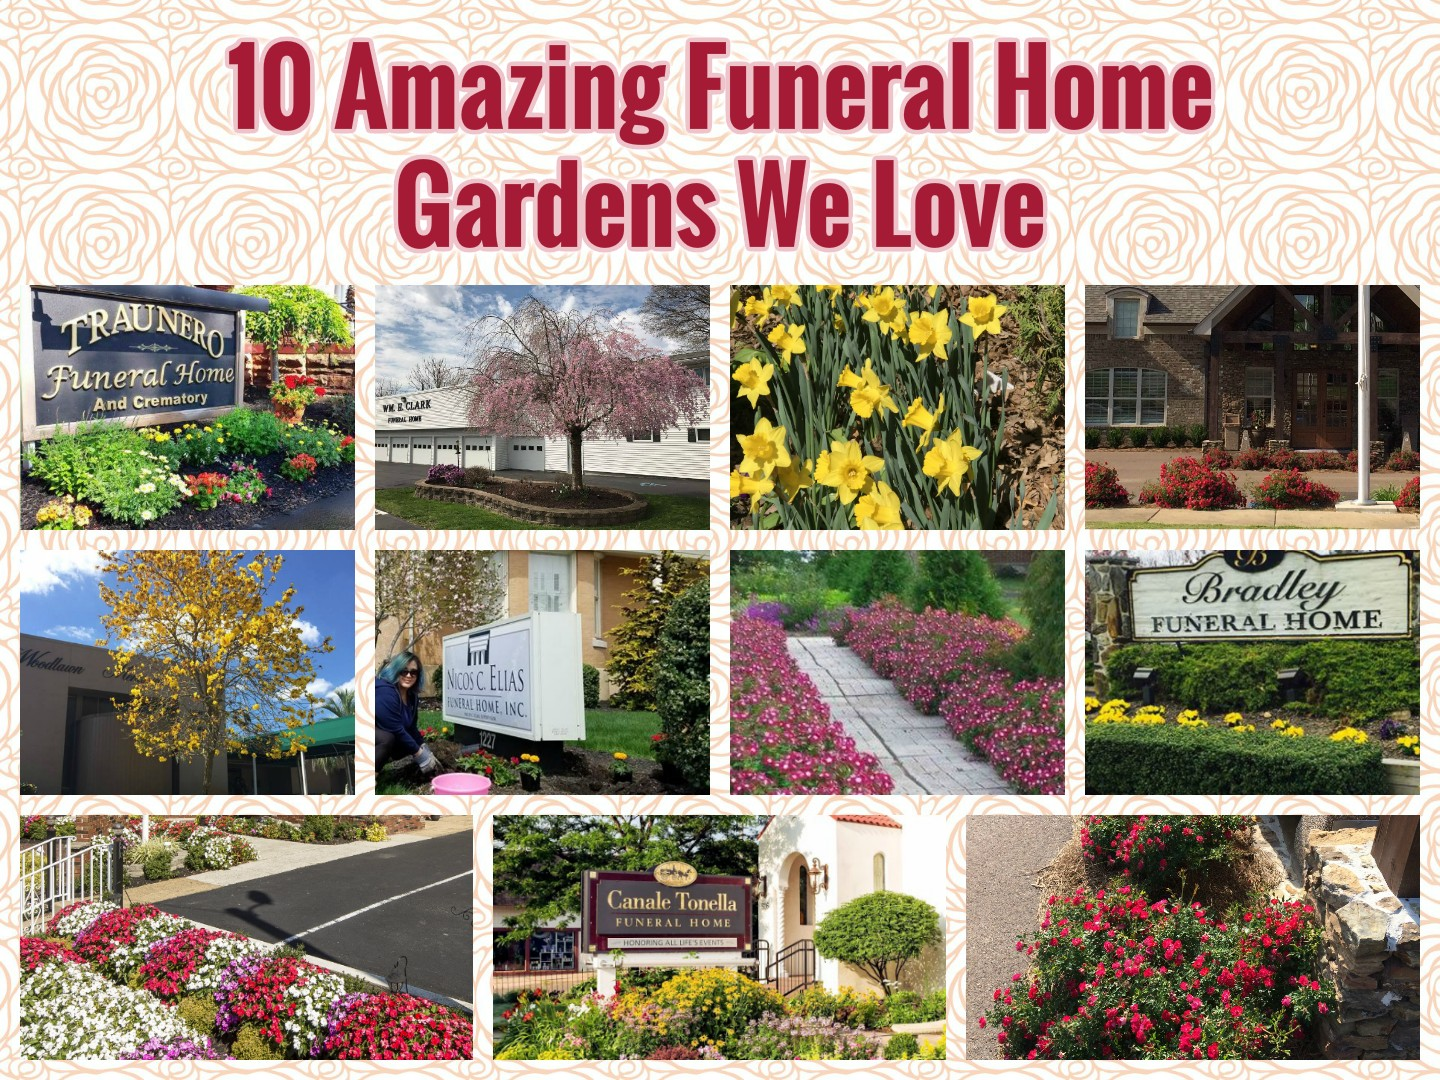 10 Amazing Funeral Home Gardens We Love